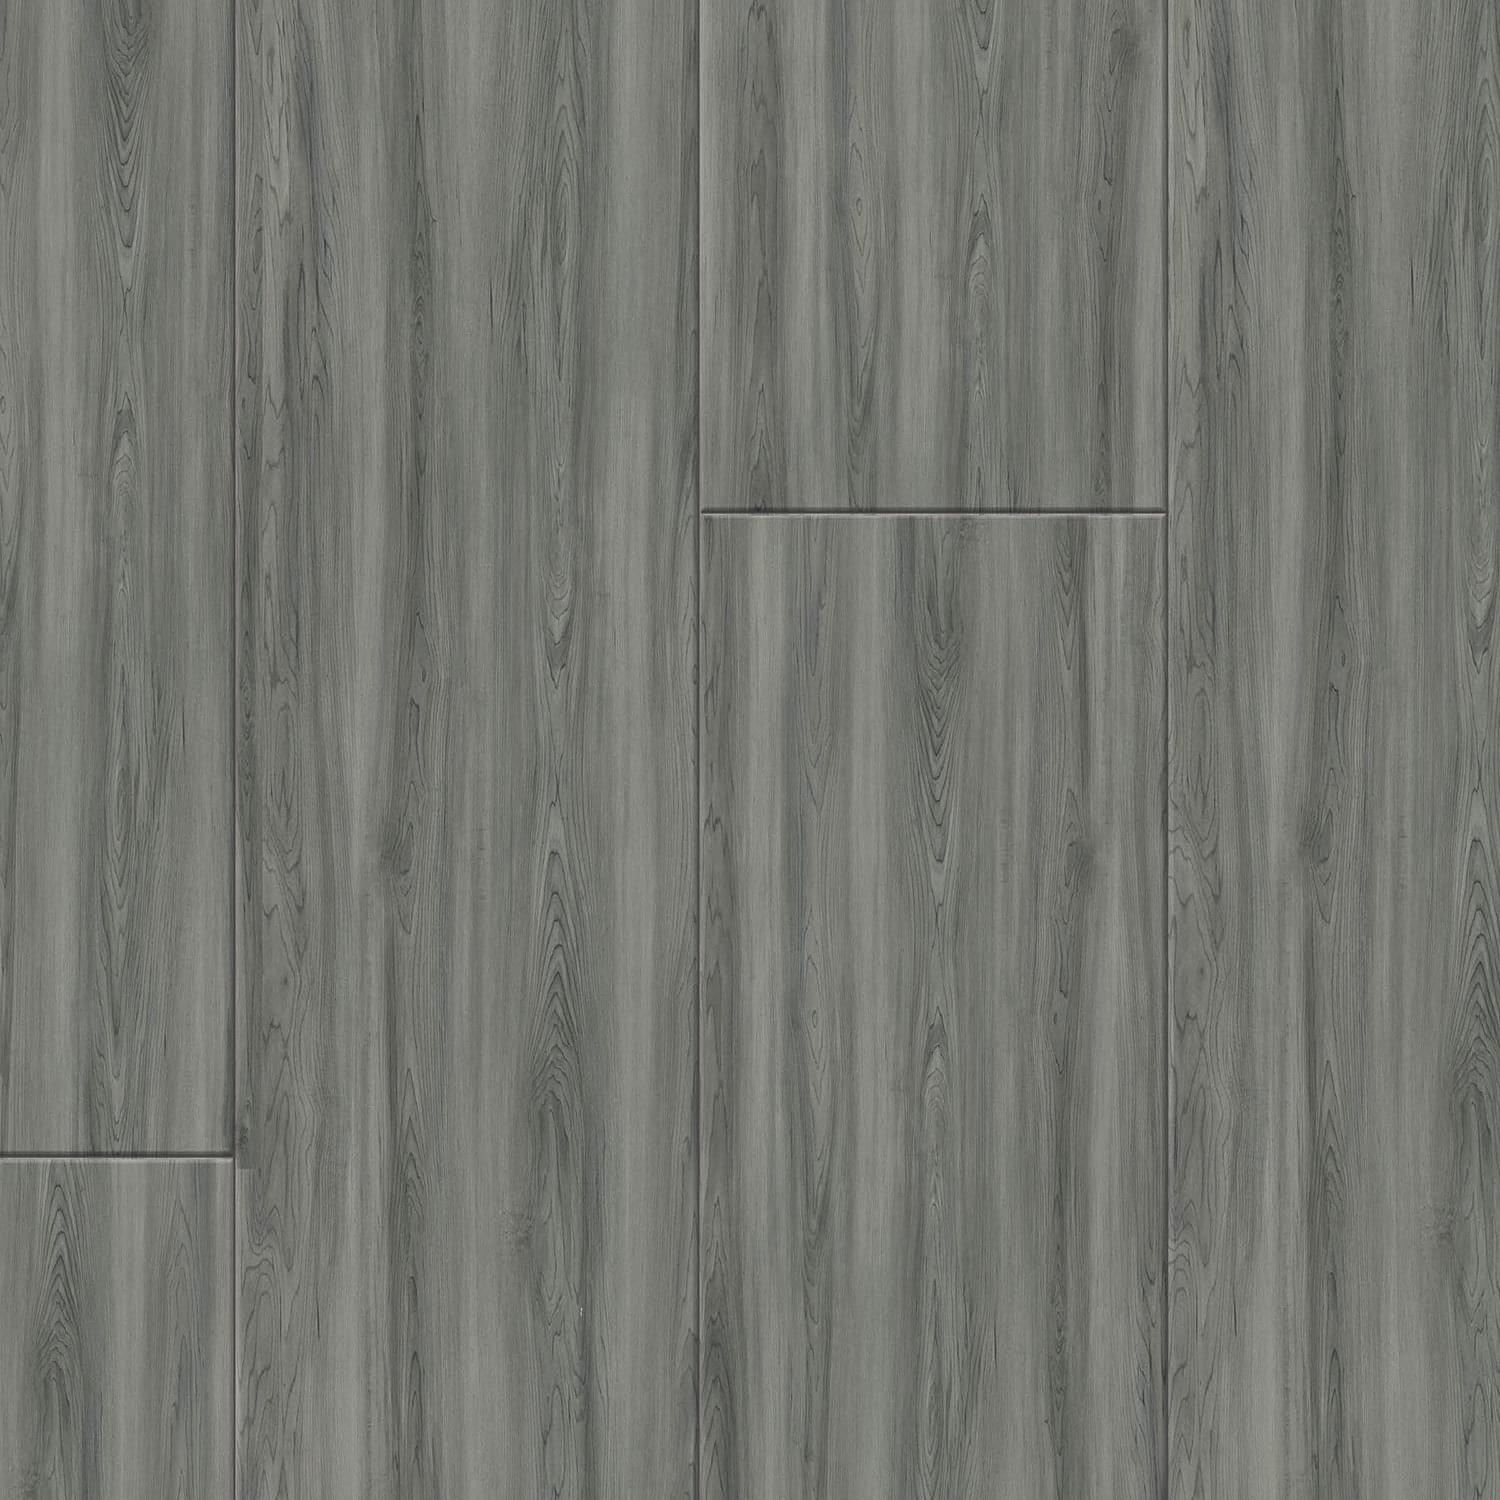 Avenue Gallery Northern Smoke gray floating wood plank plank wpc silver grey click lock snap